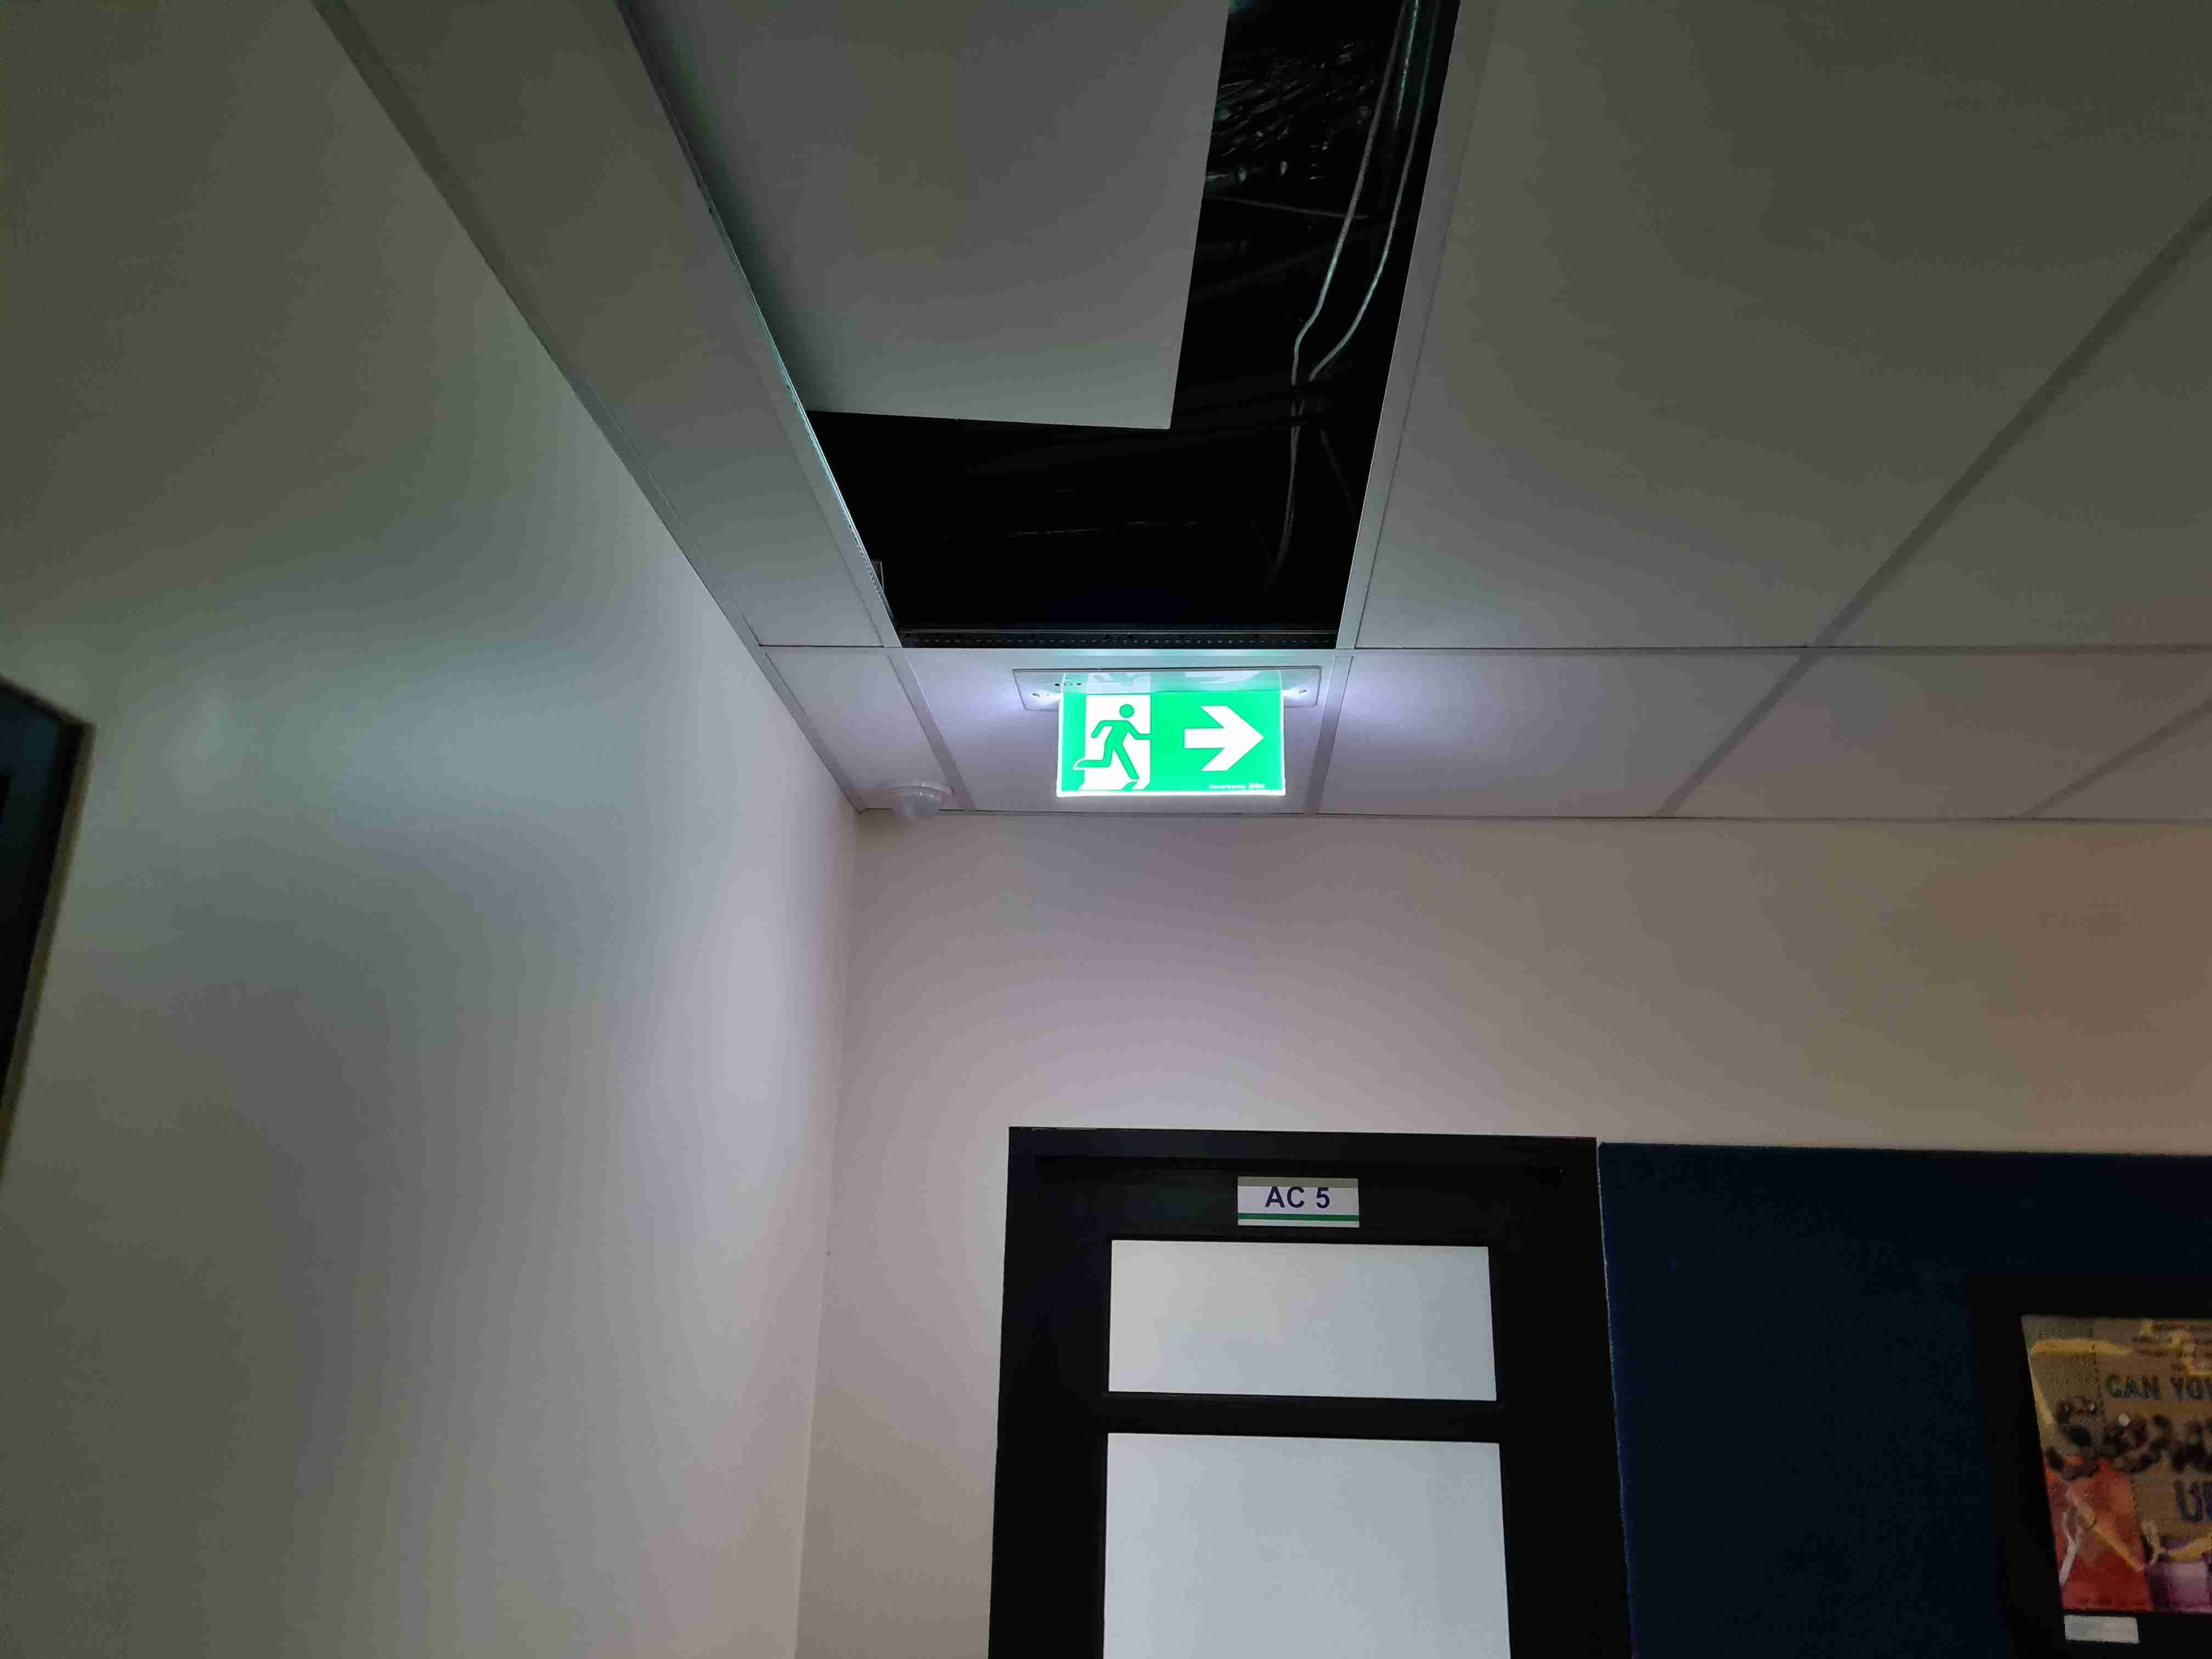 Emergency Lights Installations - Caroline Springs By Ramz Electrical via i4Tradies